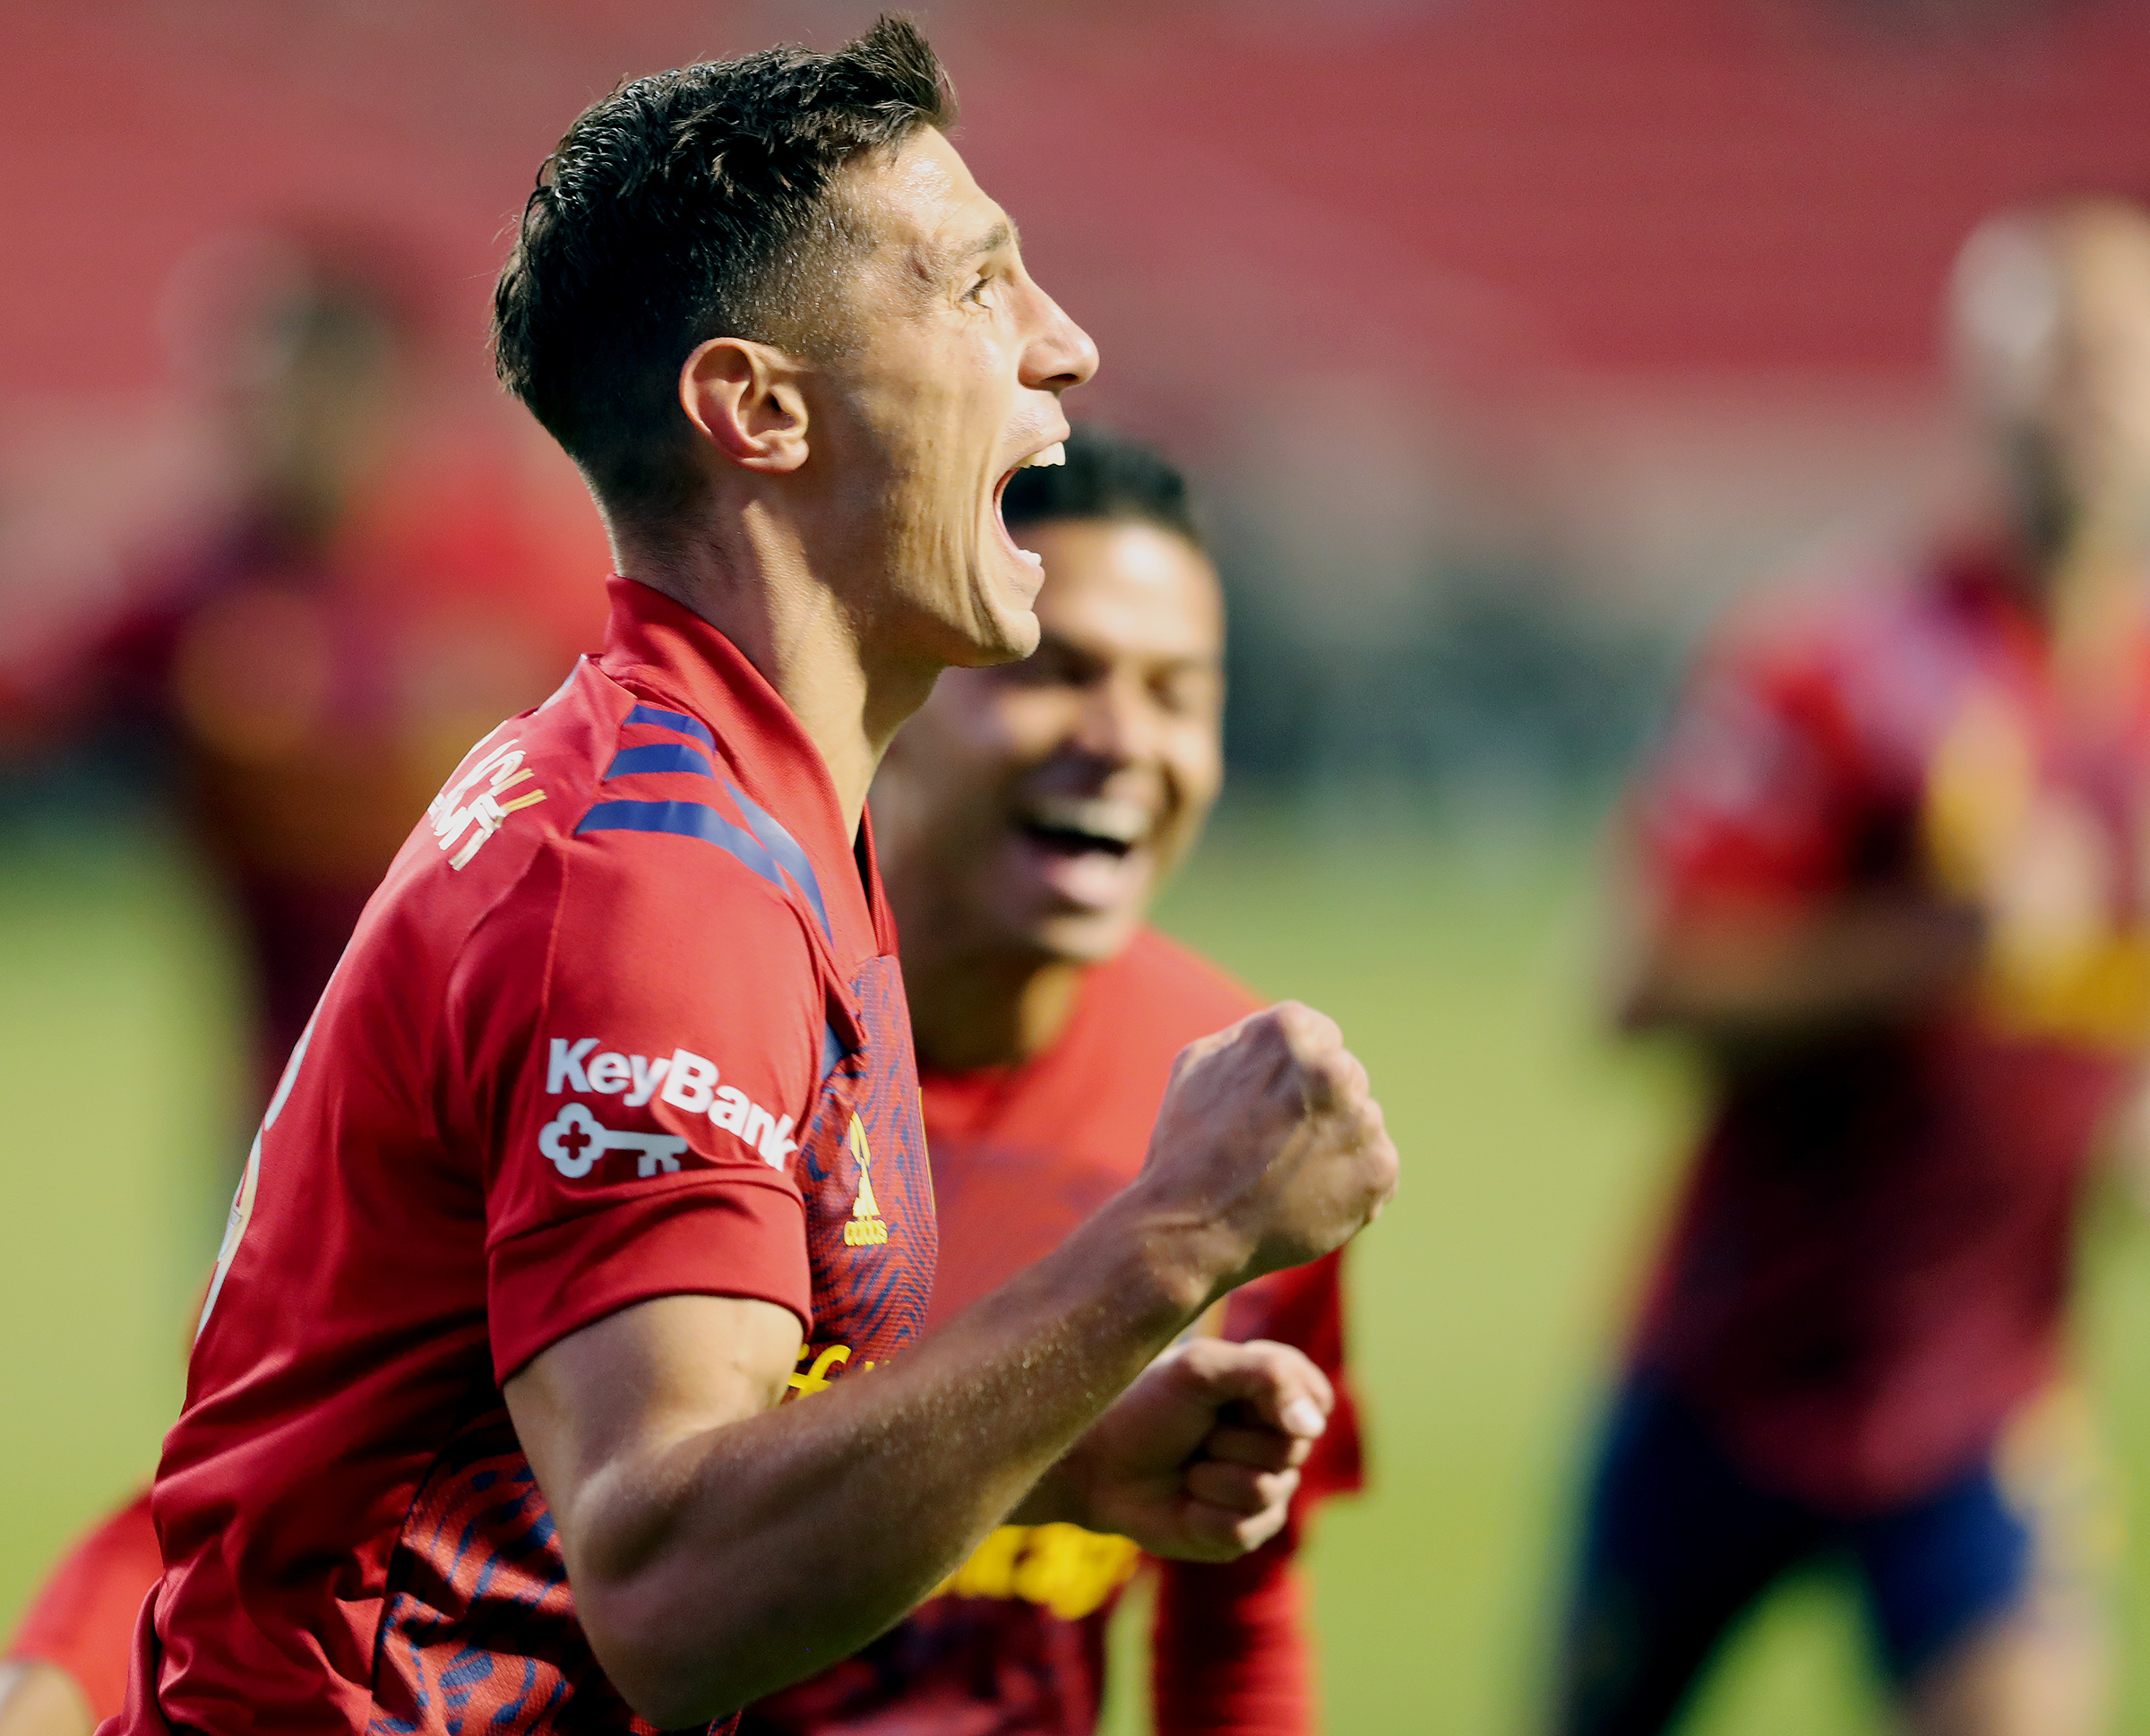 Real Salt Lake midfielder Damir Kreilach (8) celebrates a goal as Real Salt Lake and Los Angeles FC play an MLS game at Rio Tinto Stadium in Sandy on Wednesday, Sept. 9, 2020.